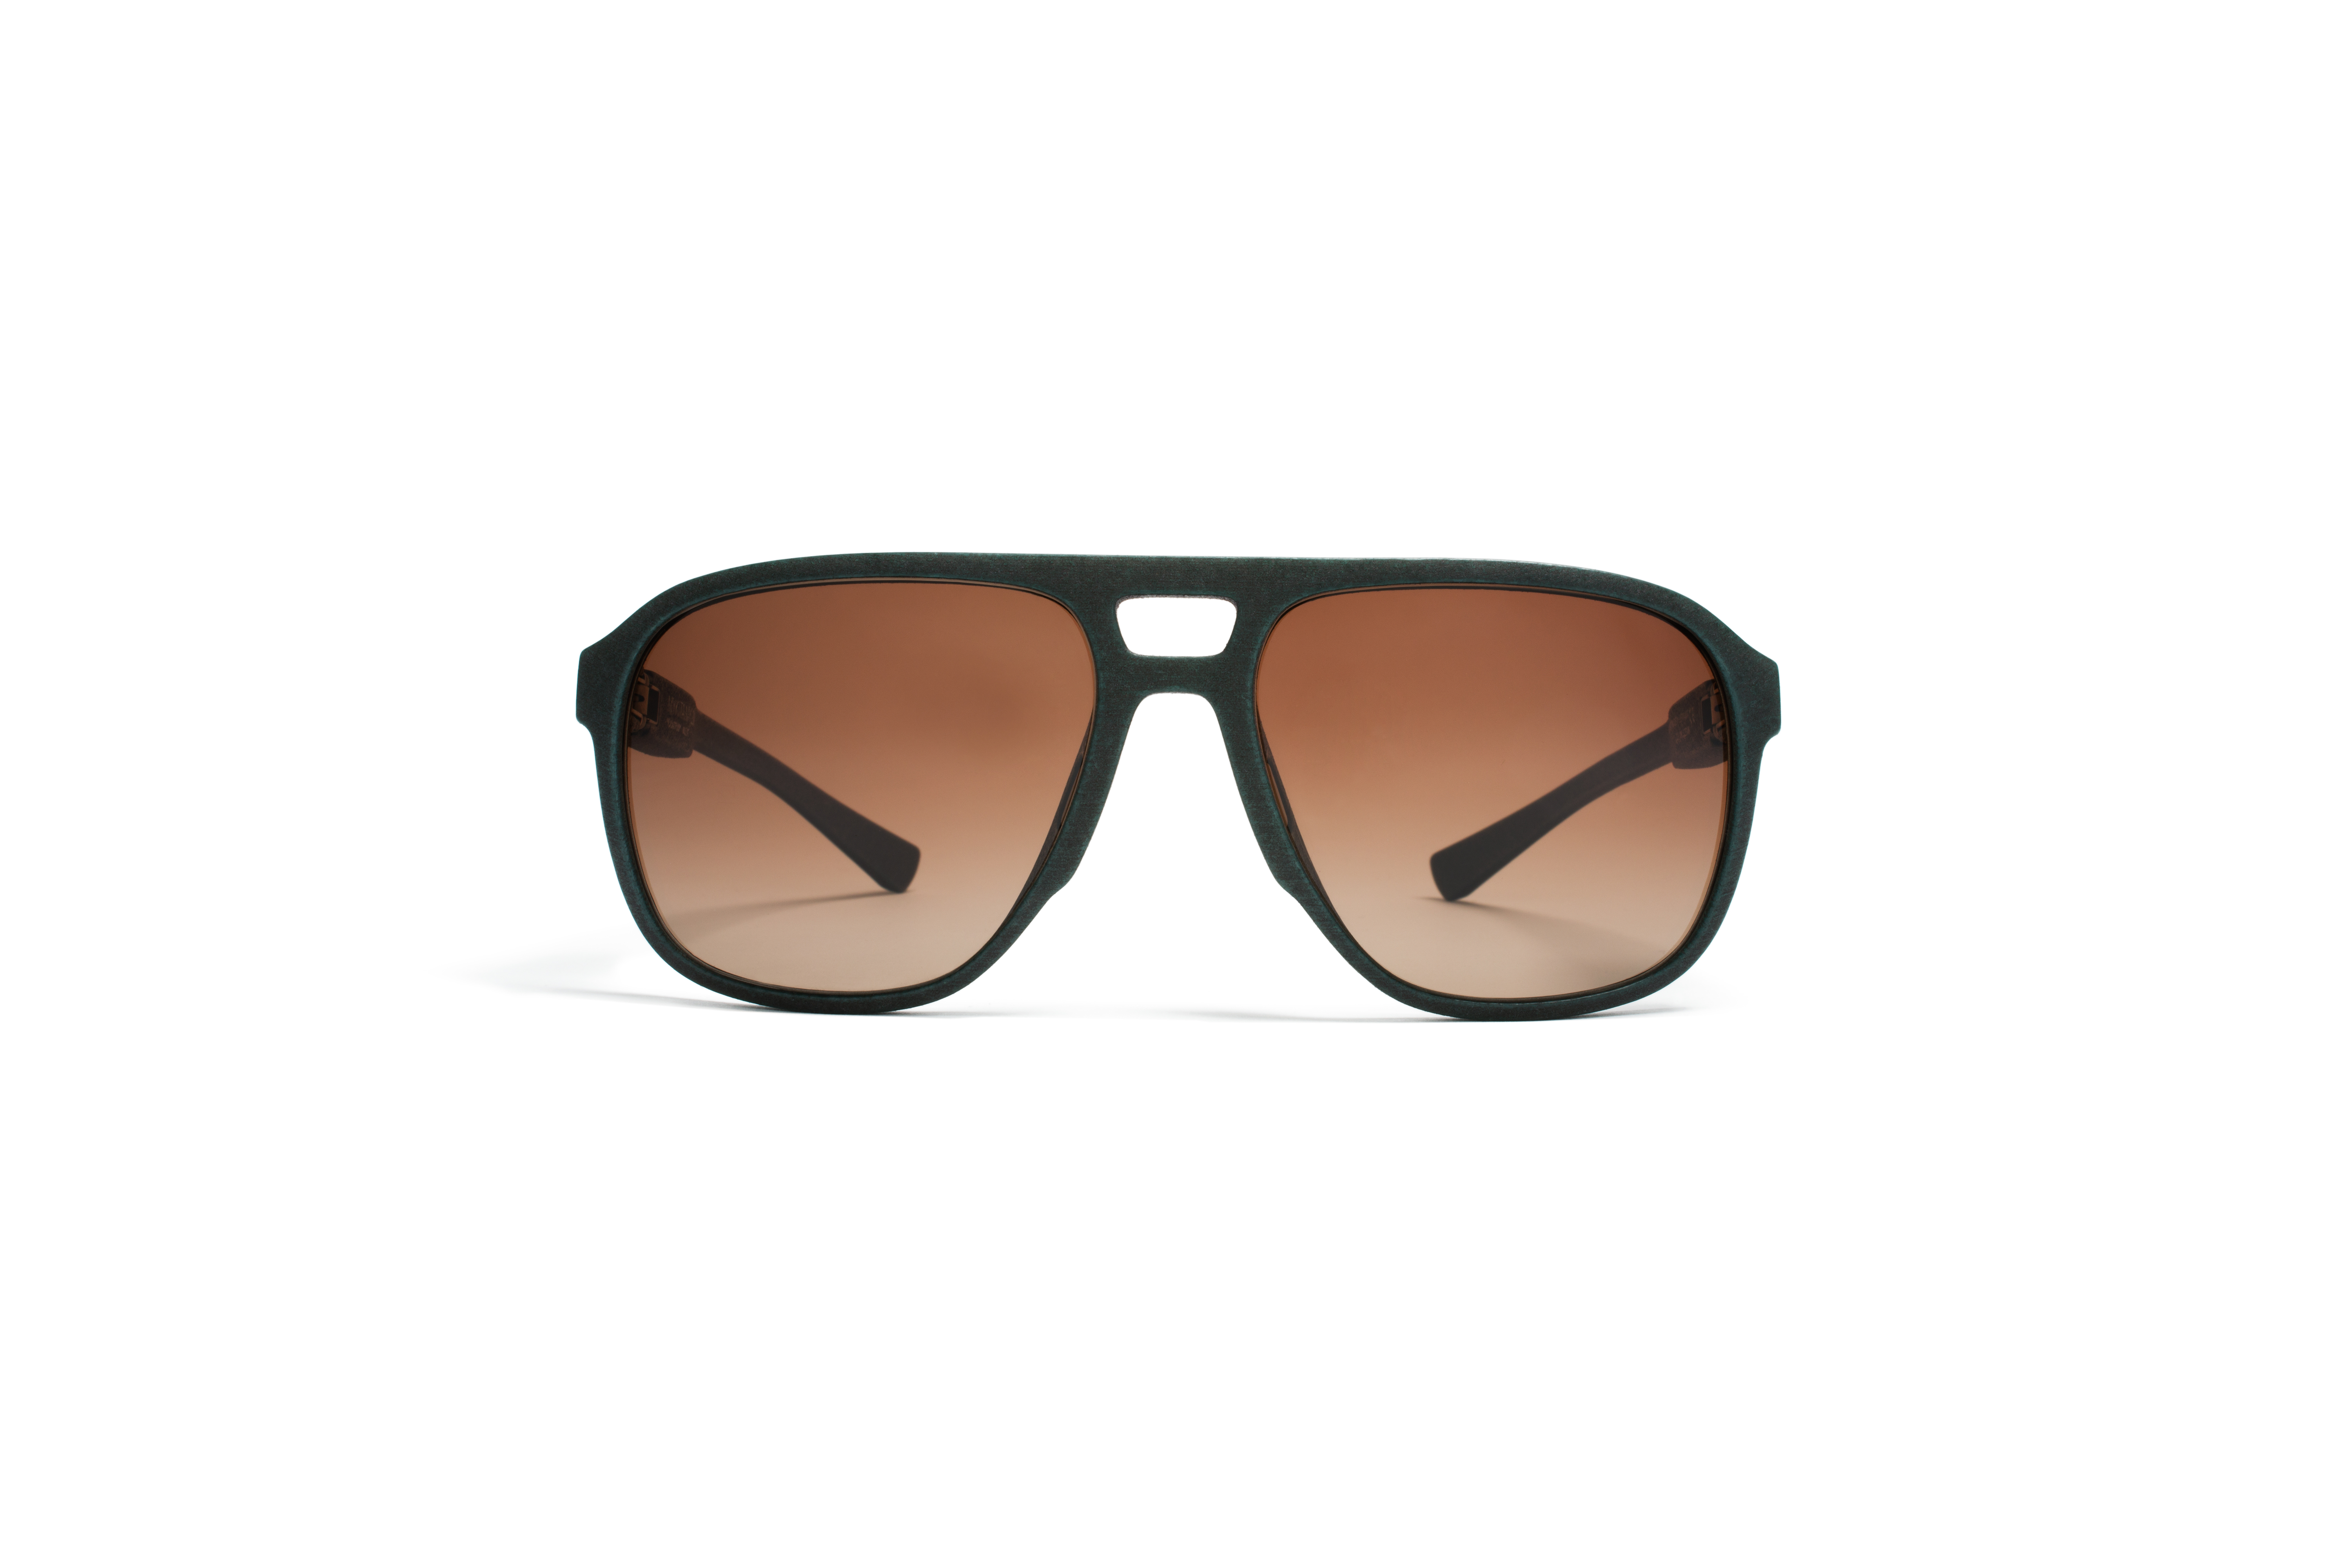 MYKITA Mylon Sun Canopus Md8 Storm Grey Brown Brow54f0d939f2443